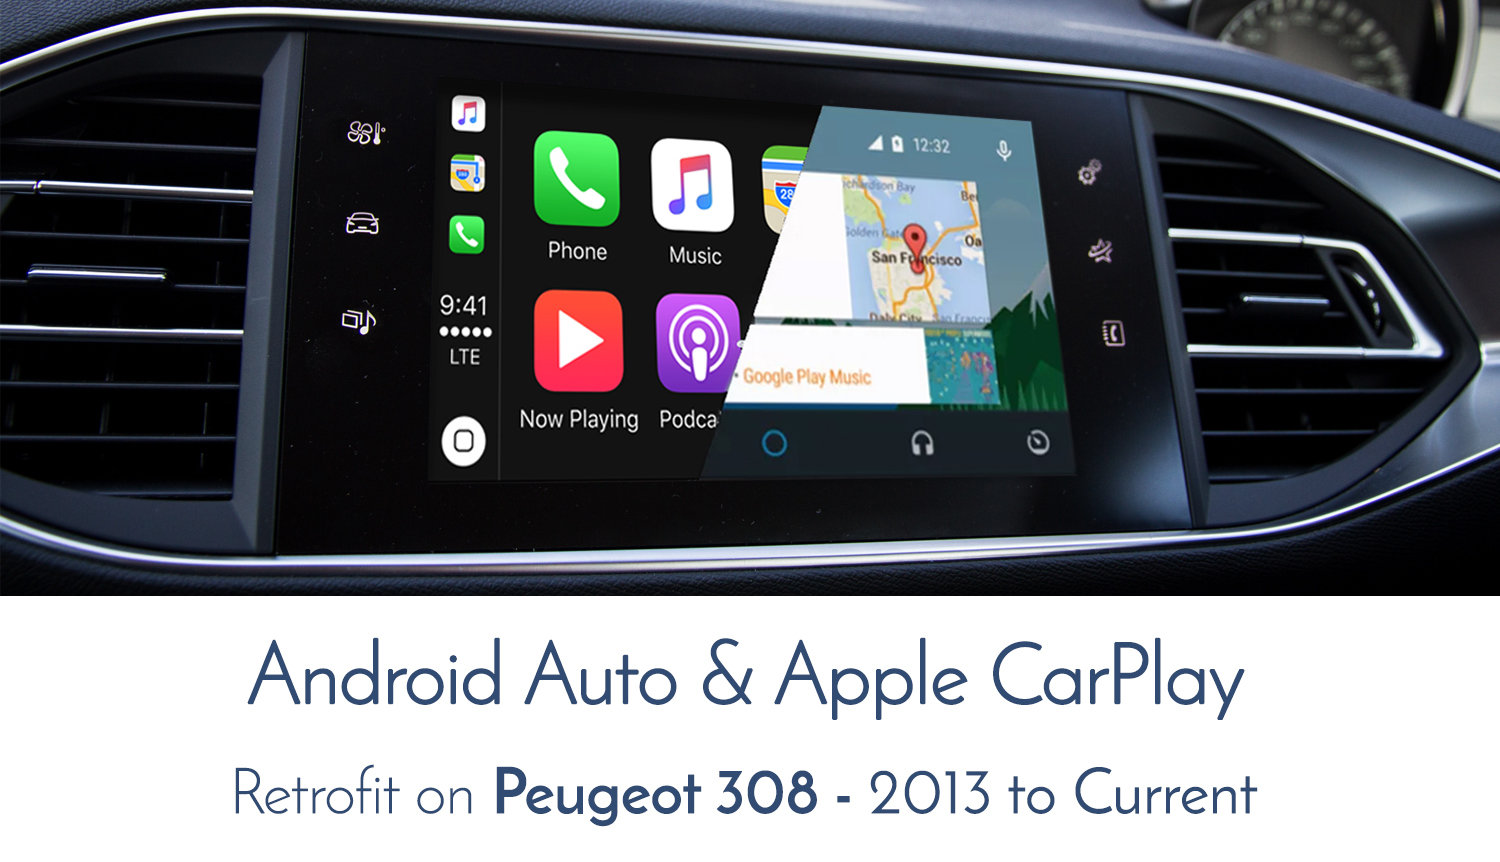 Peugeot 308 Mirror Screen Audio Integrated Apple Carplay Android